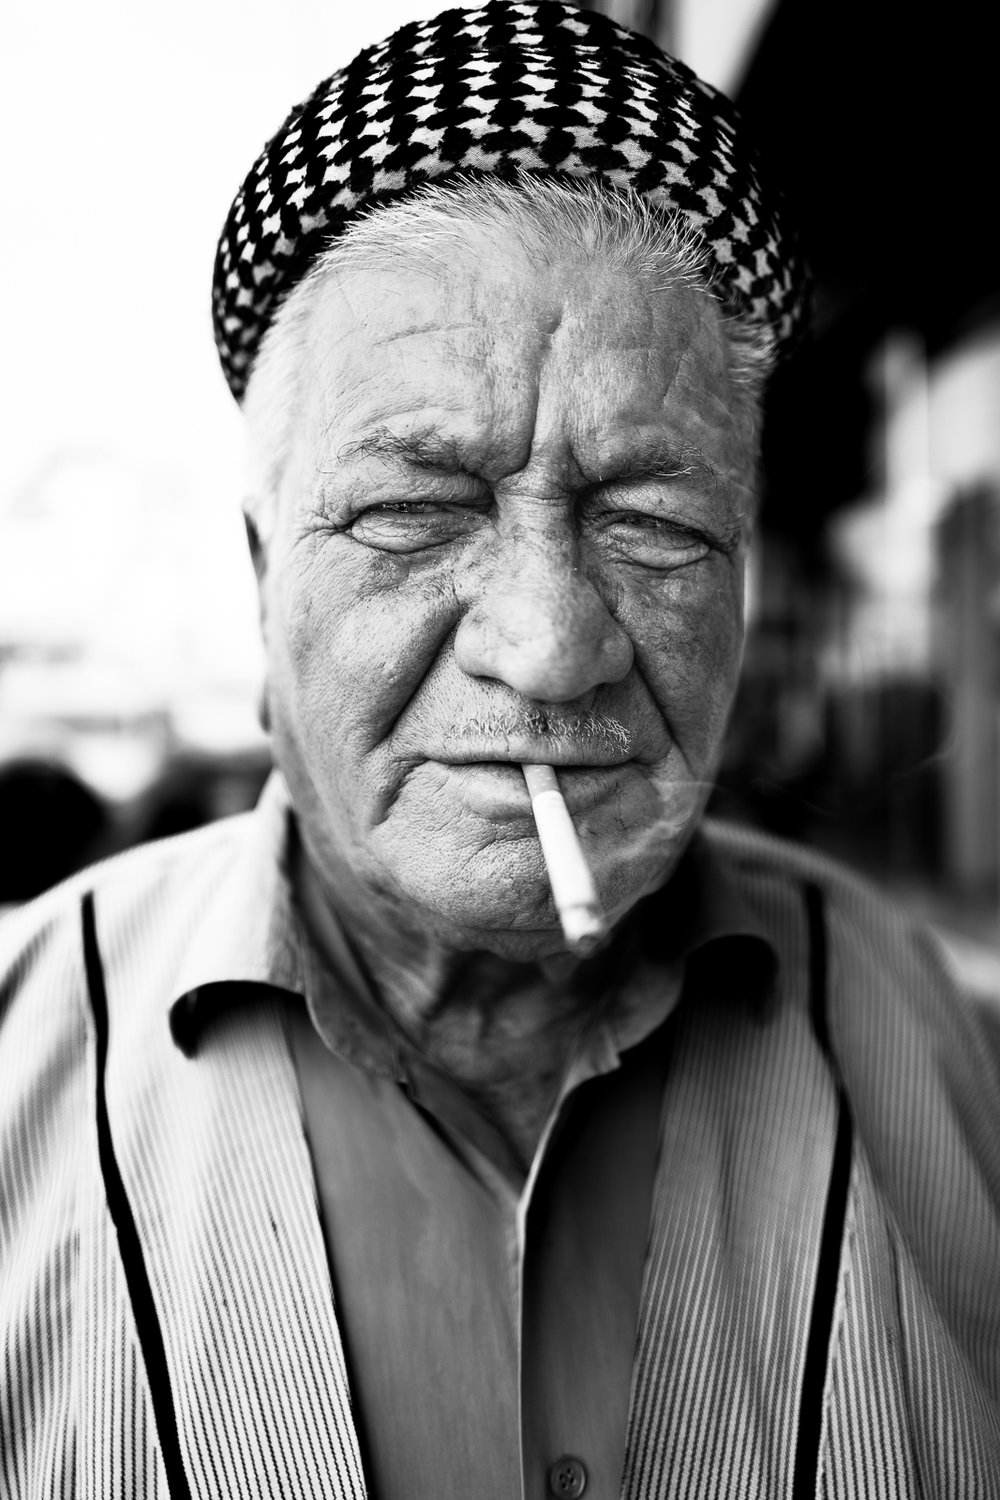 A smoker in Dohuk